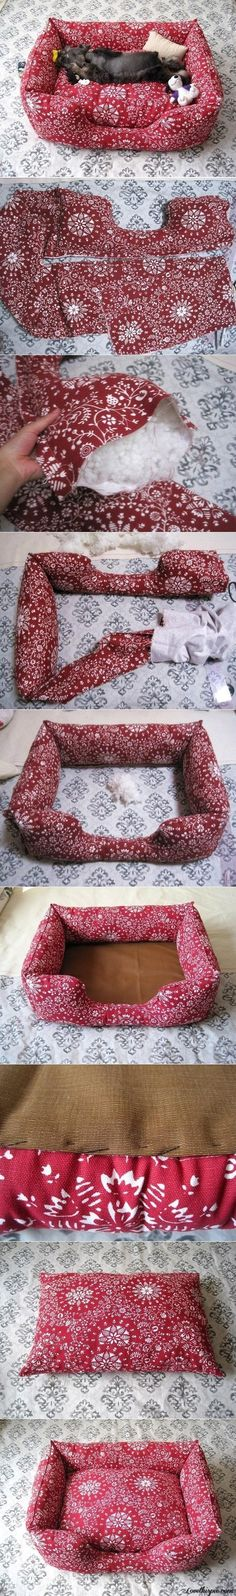 DIY Fabric Pet Sofa diy furniture crafts craft ideas diy ideas home diy pet bed fabric